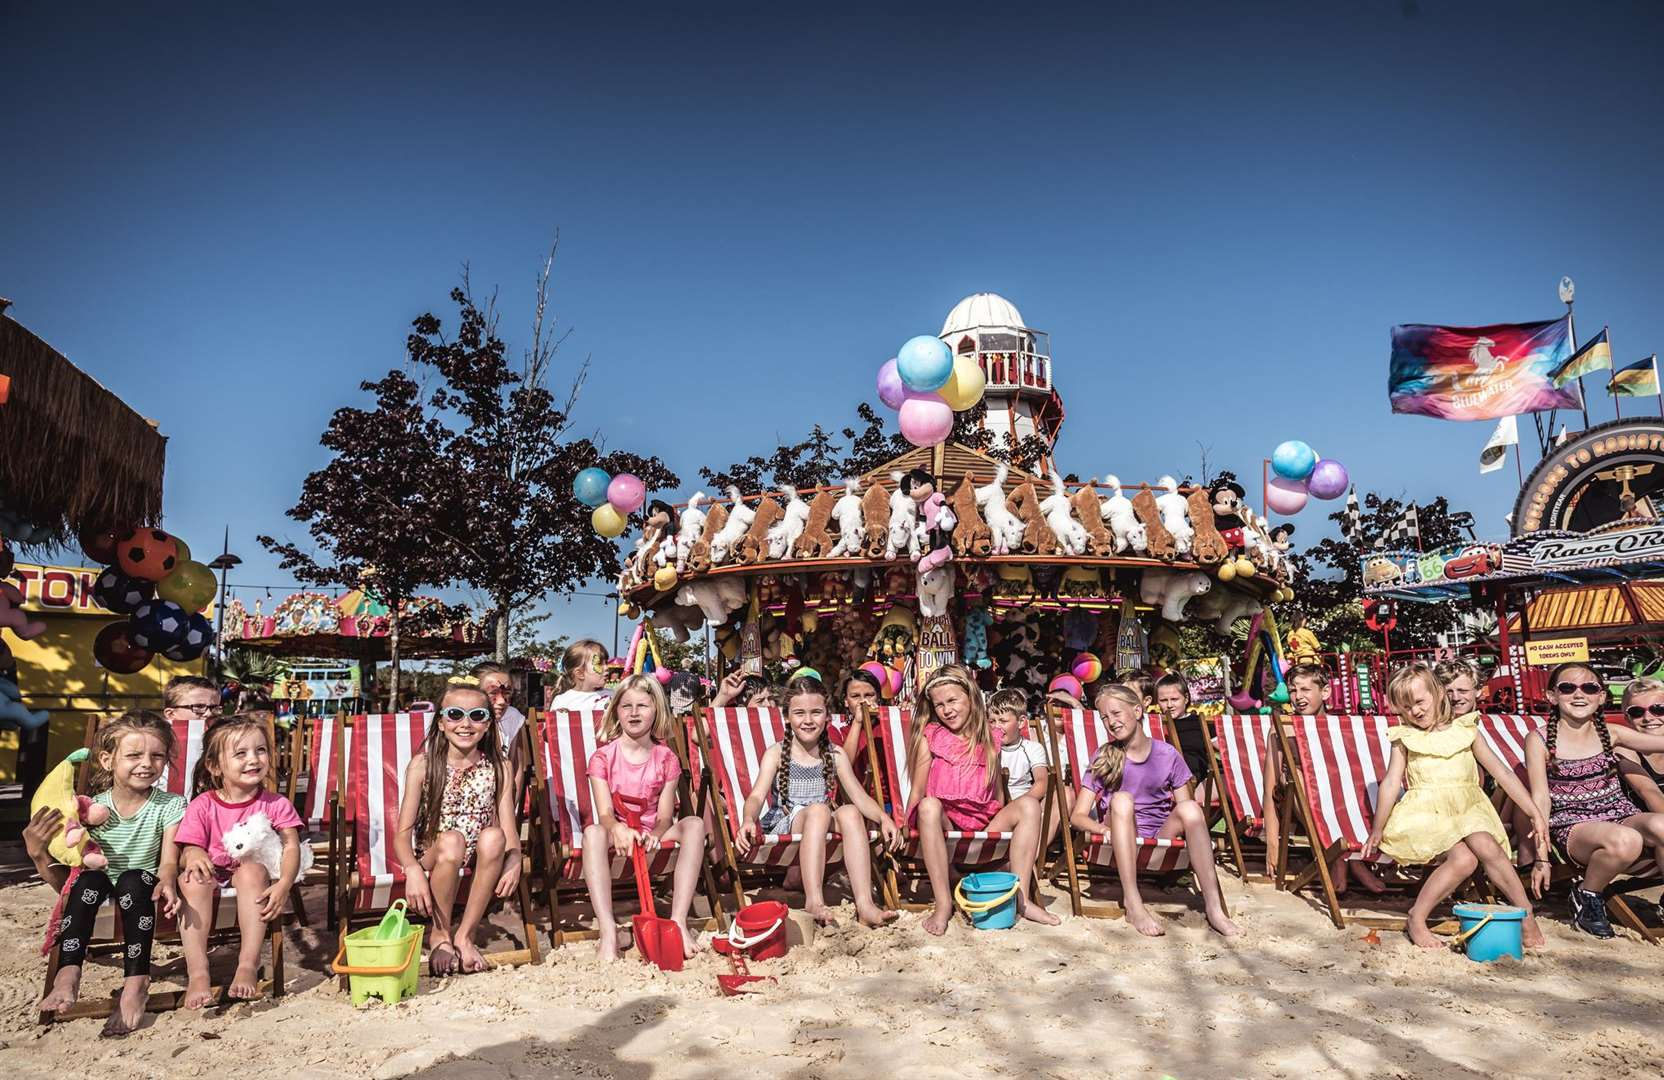 Summer holidays at The Beach at Bluewater